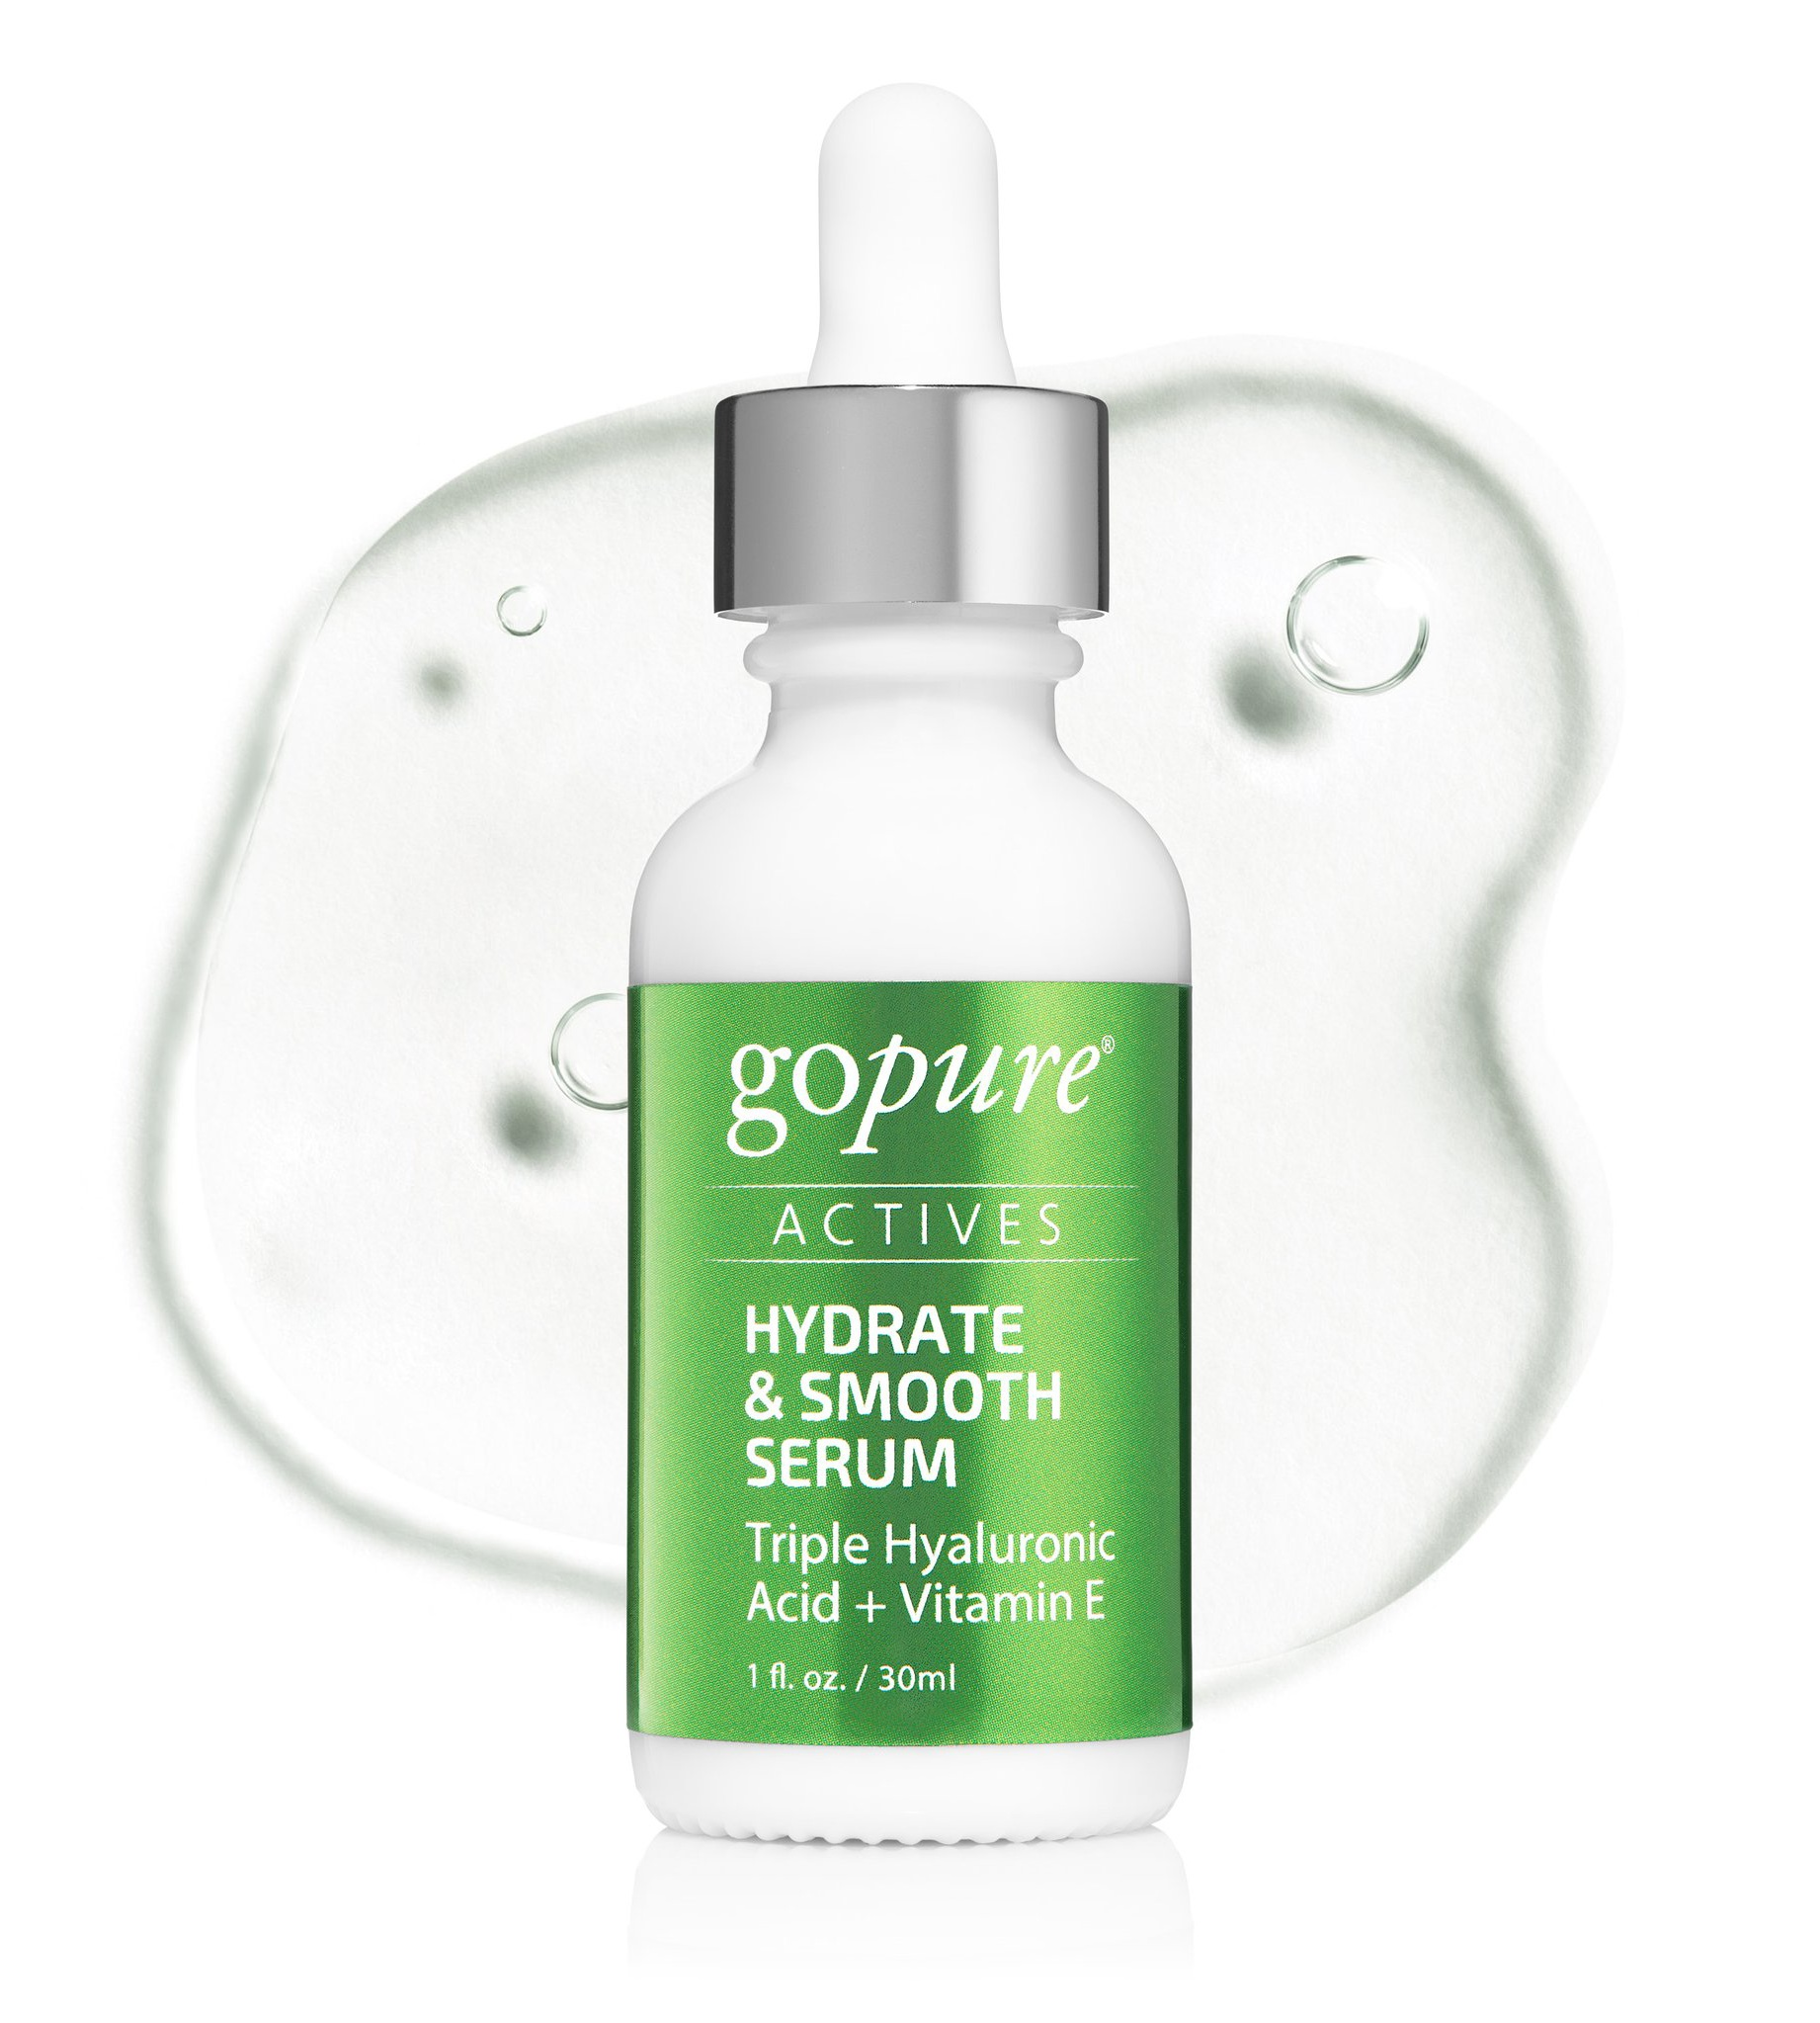 goPure Beauty Actives Hydrate & Smooth Serum